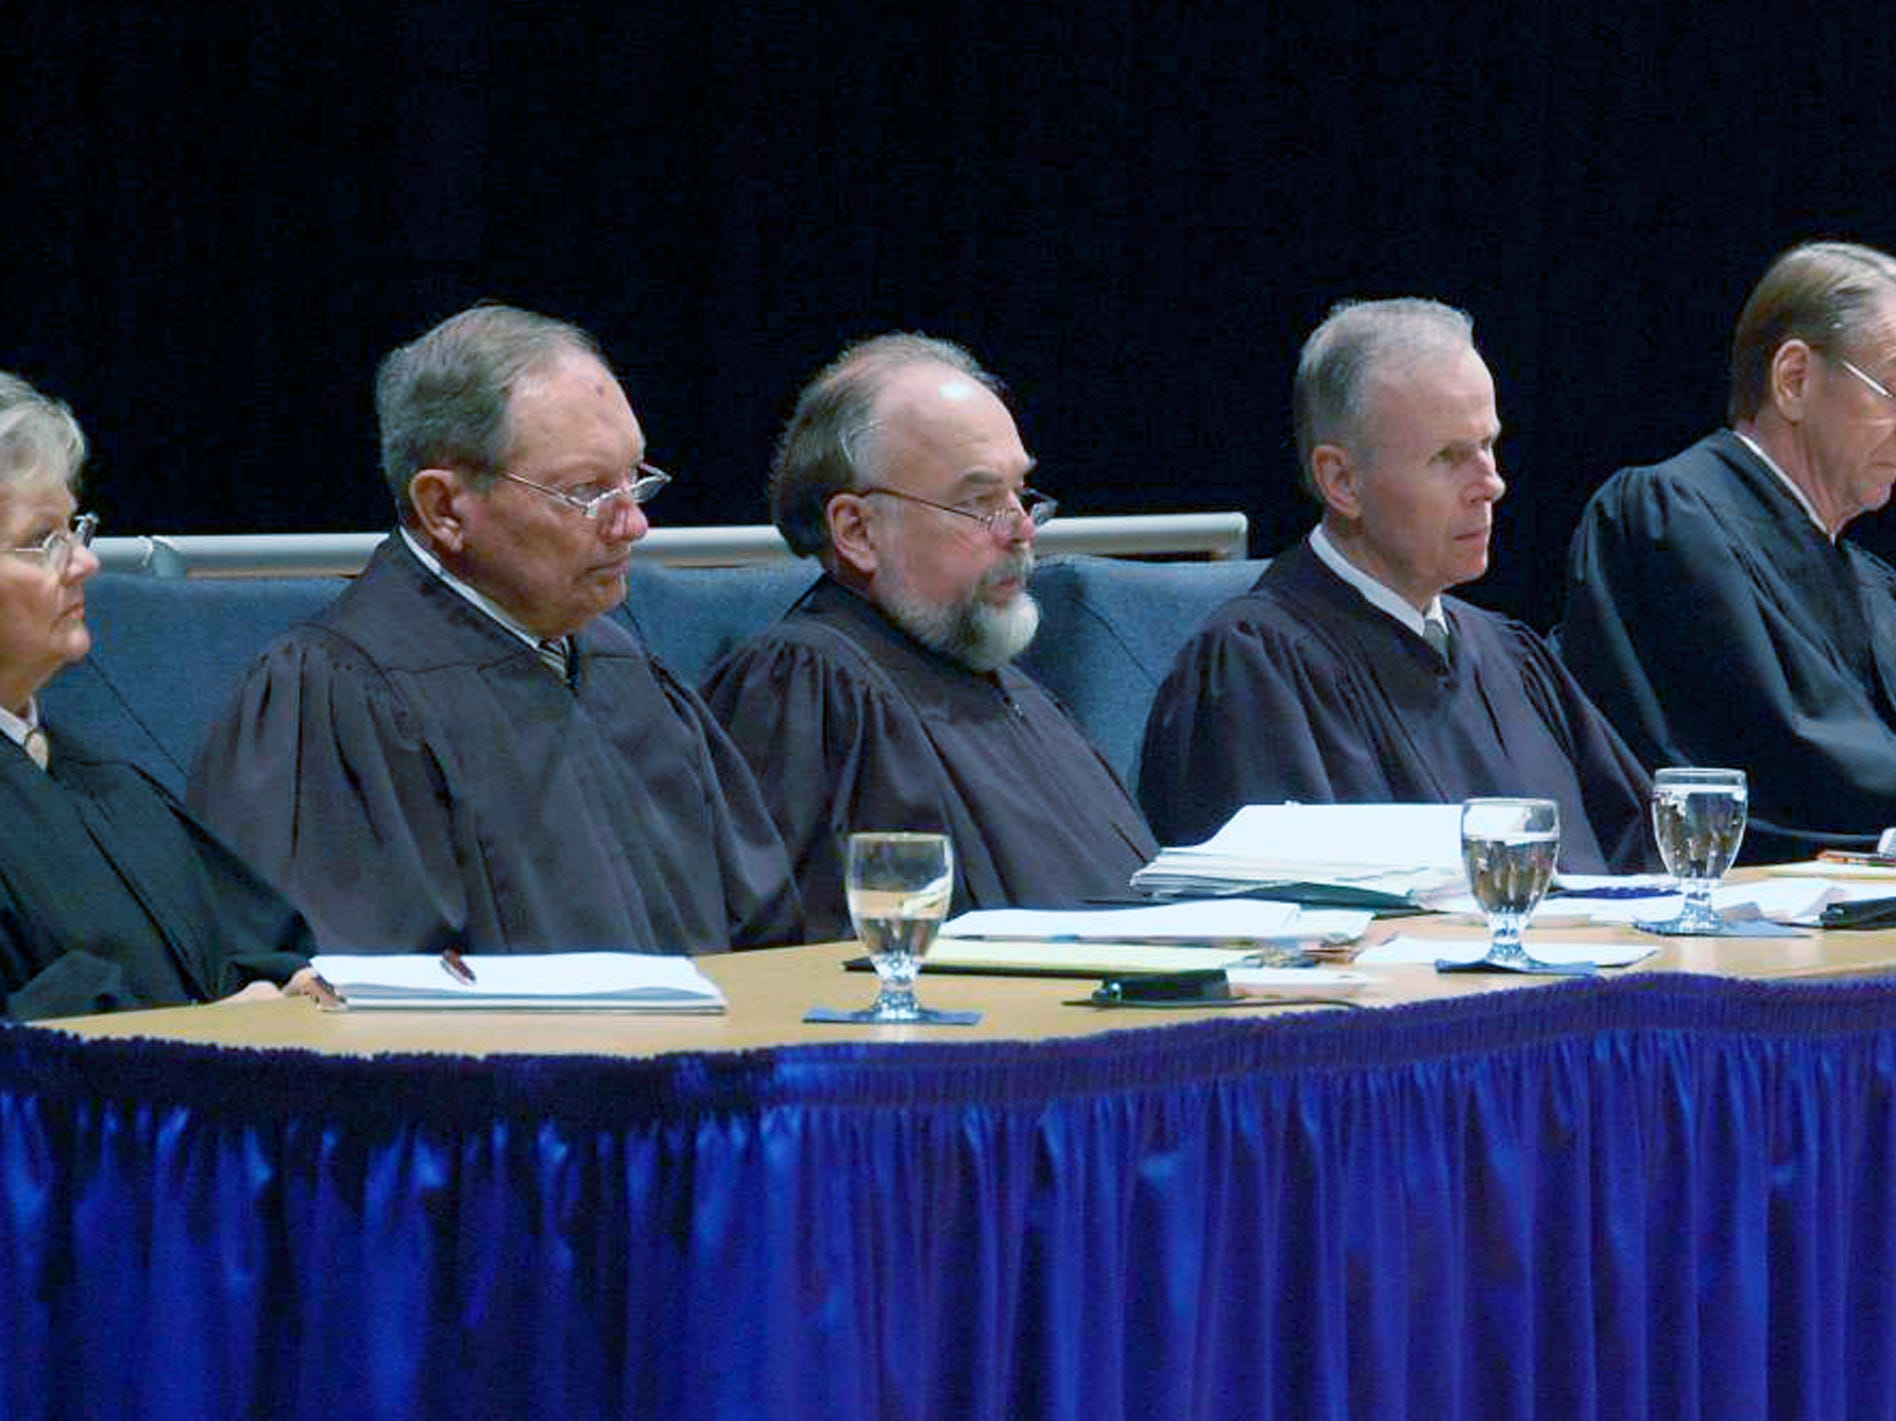 The South Dakota Supreme Court hears oral arguments Monday, Sept. 29, 2008, in Brookings, S.D. Pictured are Justices Judith Meierhenry, Richard Sabers, David Gilbertson (chief justice), John Konenkamp and Steven Zinter.  (AP Photo/Carson Walker)